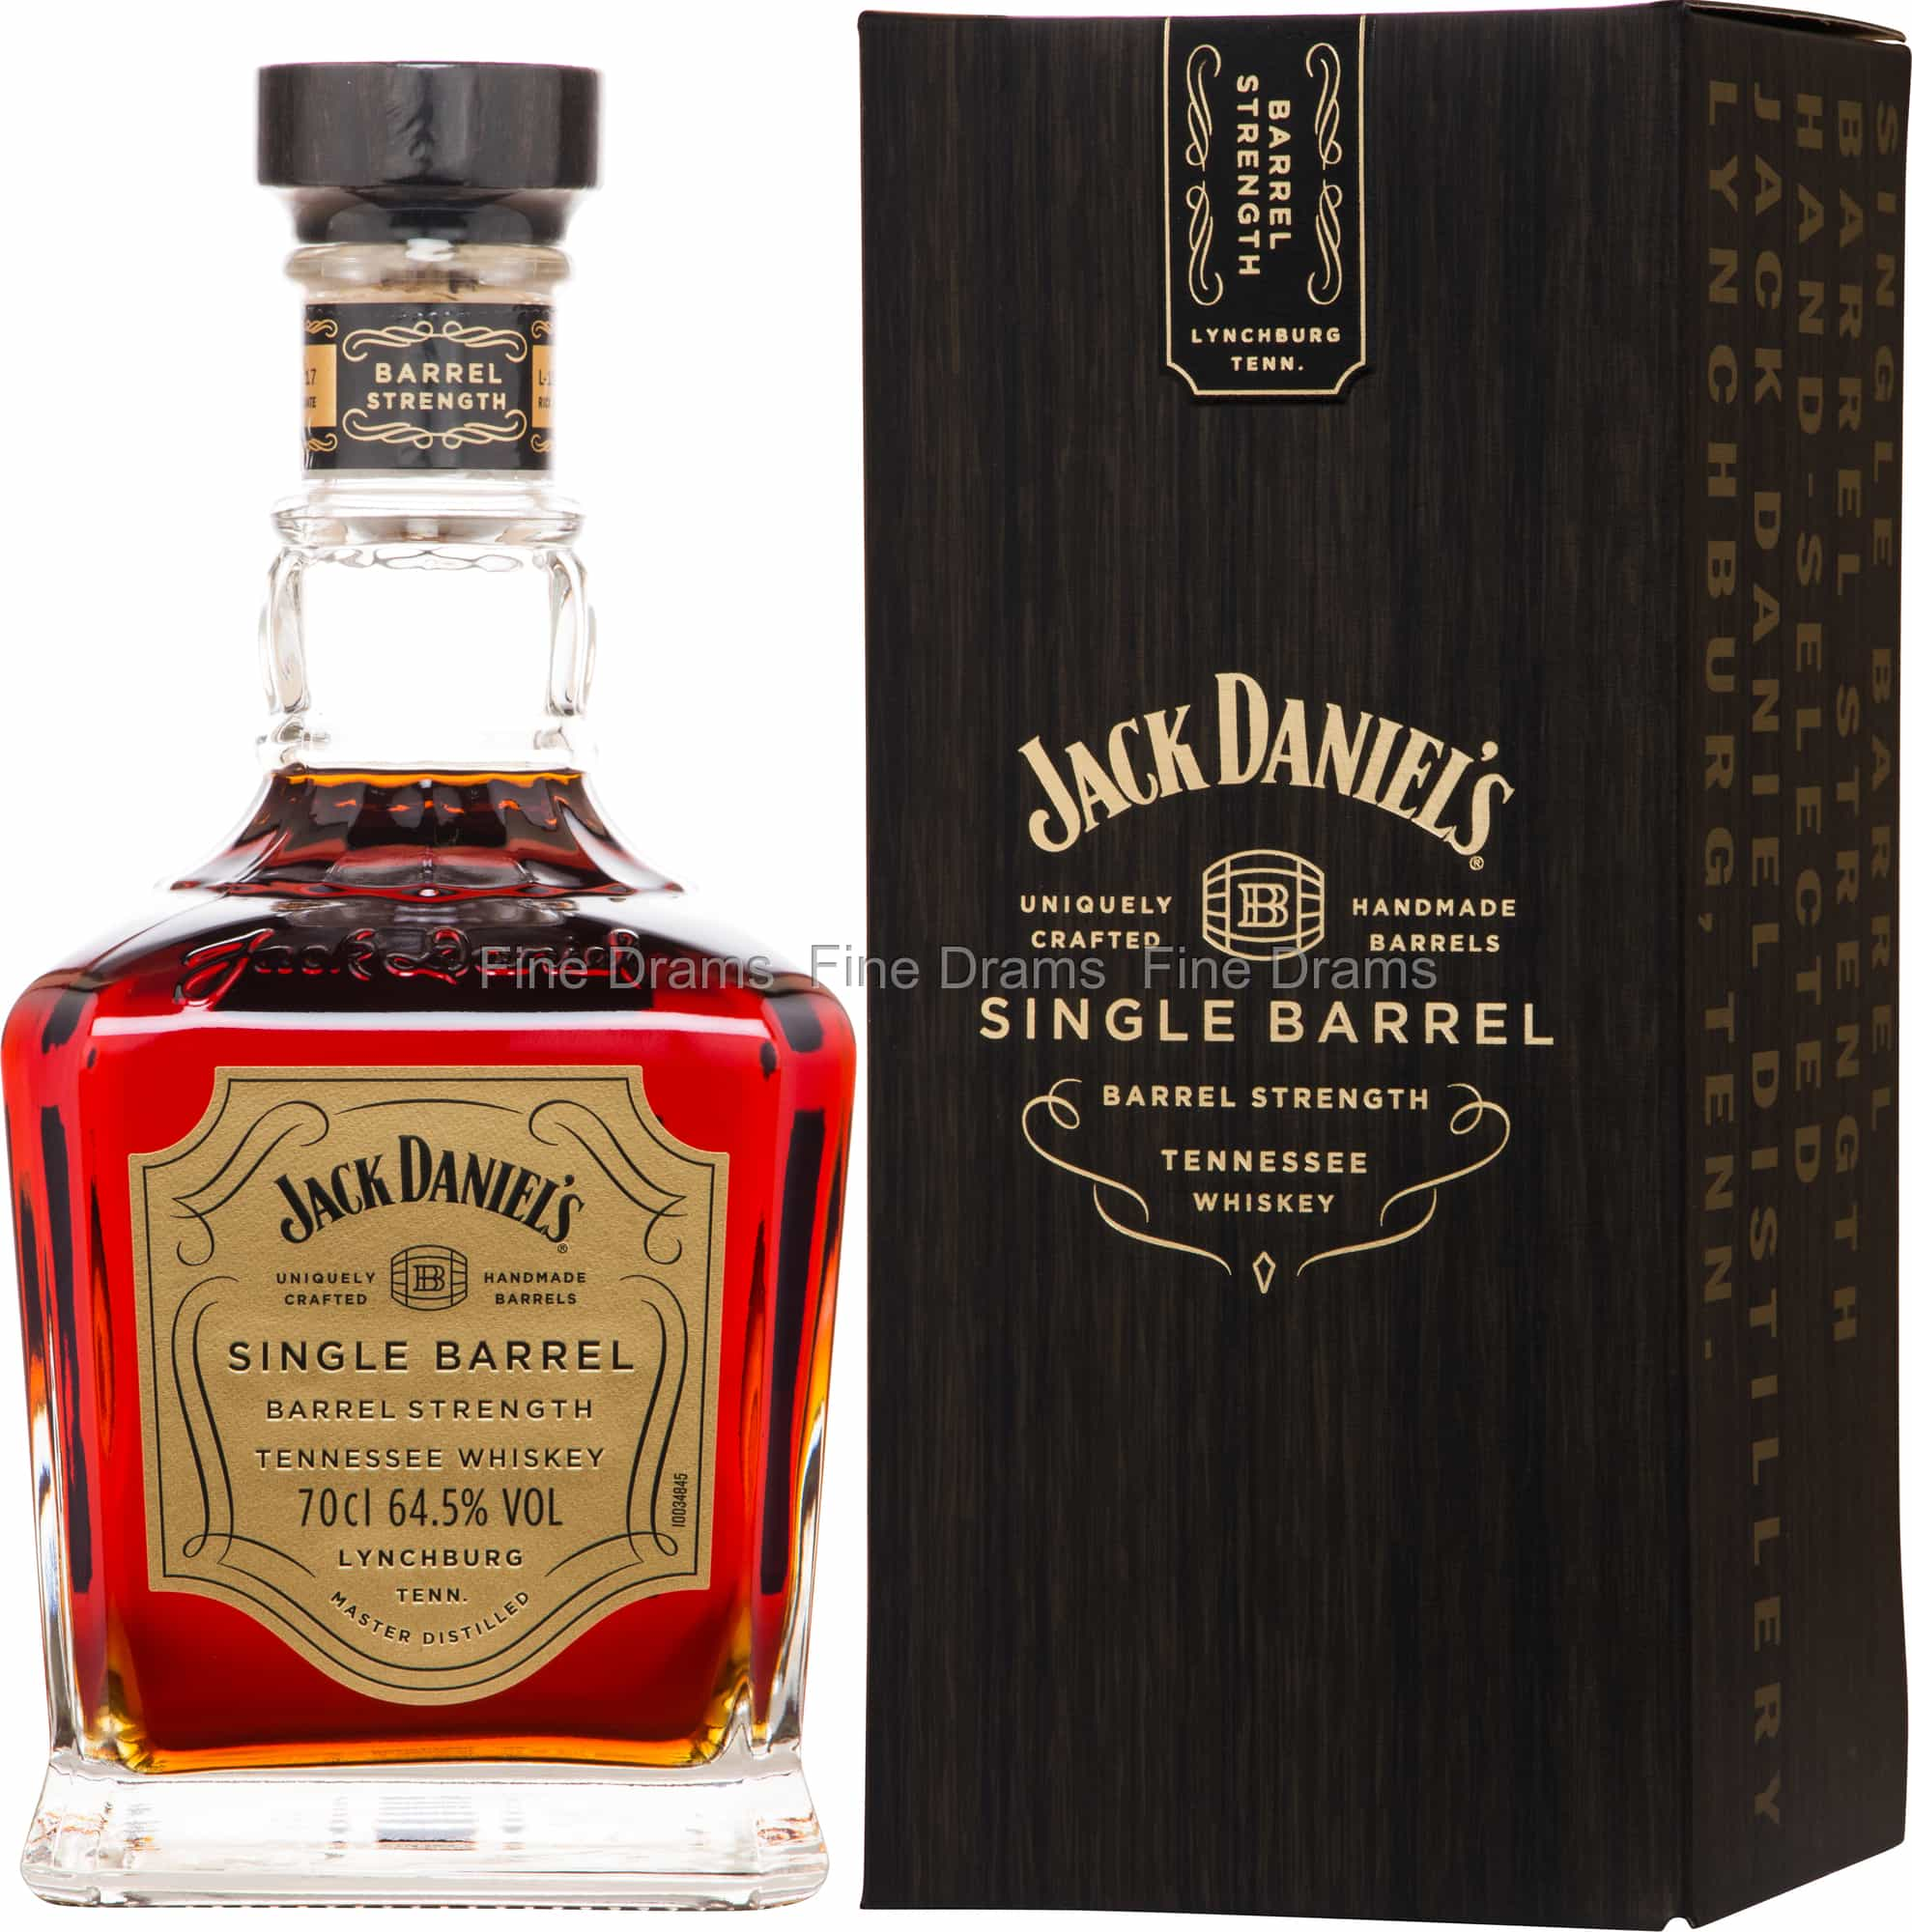 Jack Daniel's Single Barrel Barrel Strength Tennessee Whiskey